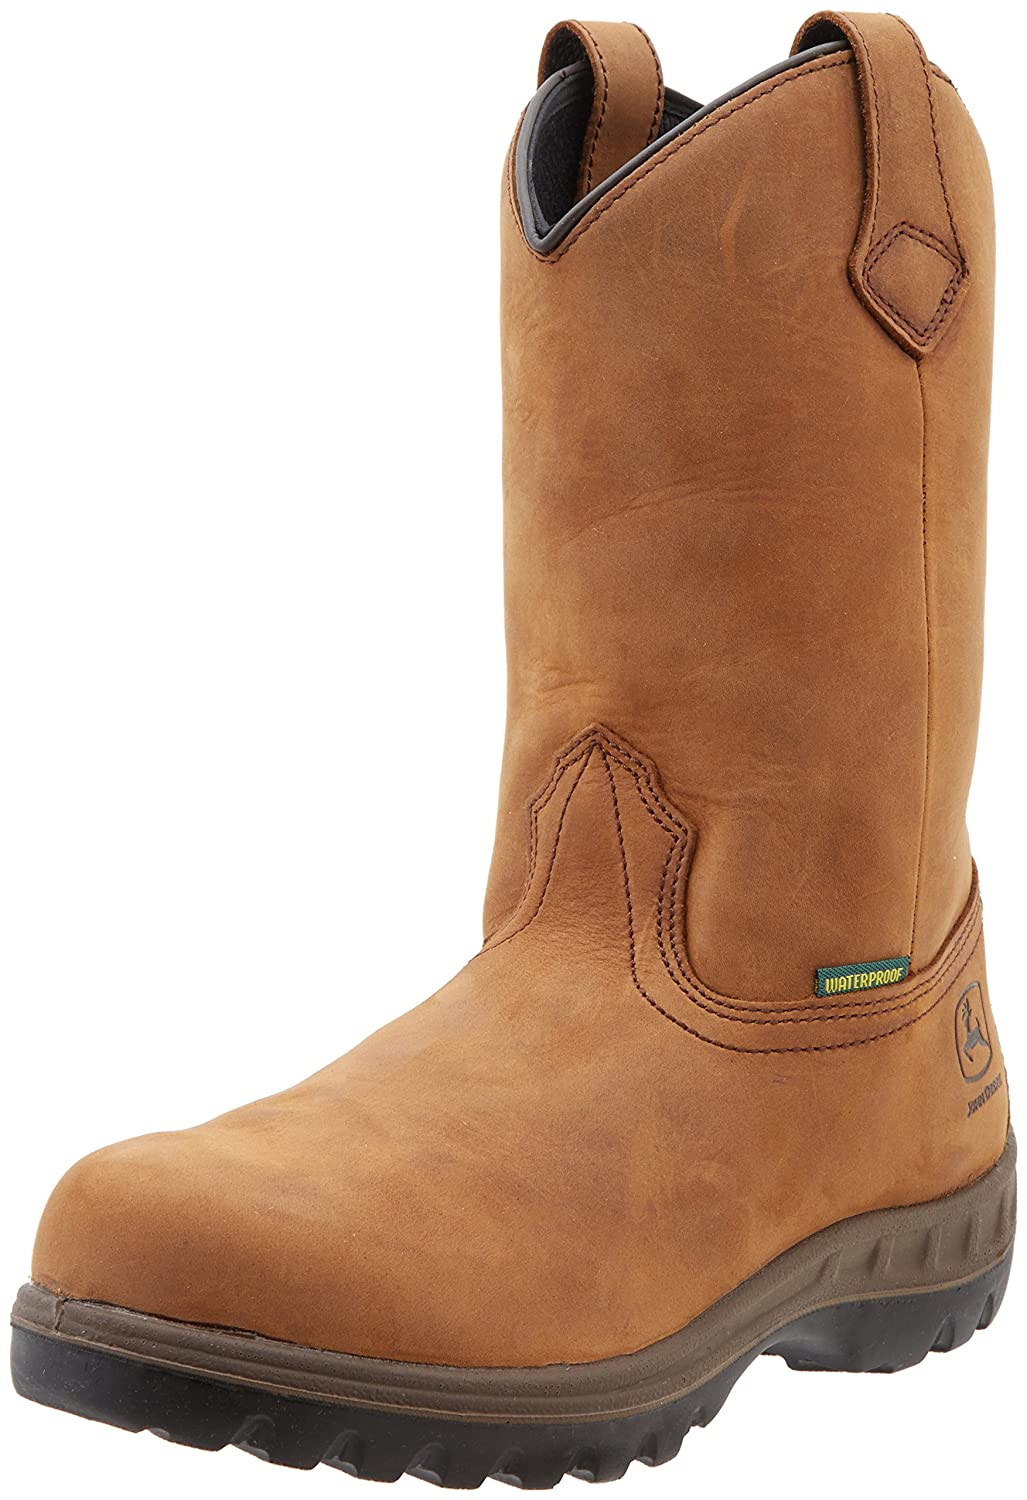 [John Deere] メンズWCT Waterproof 11